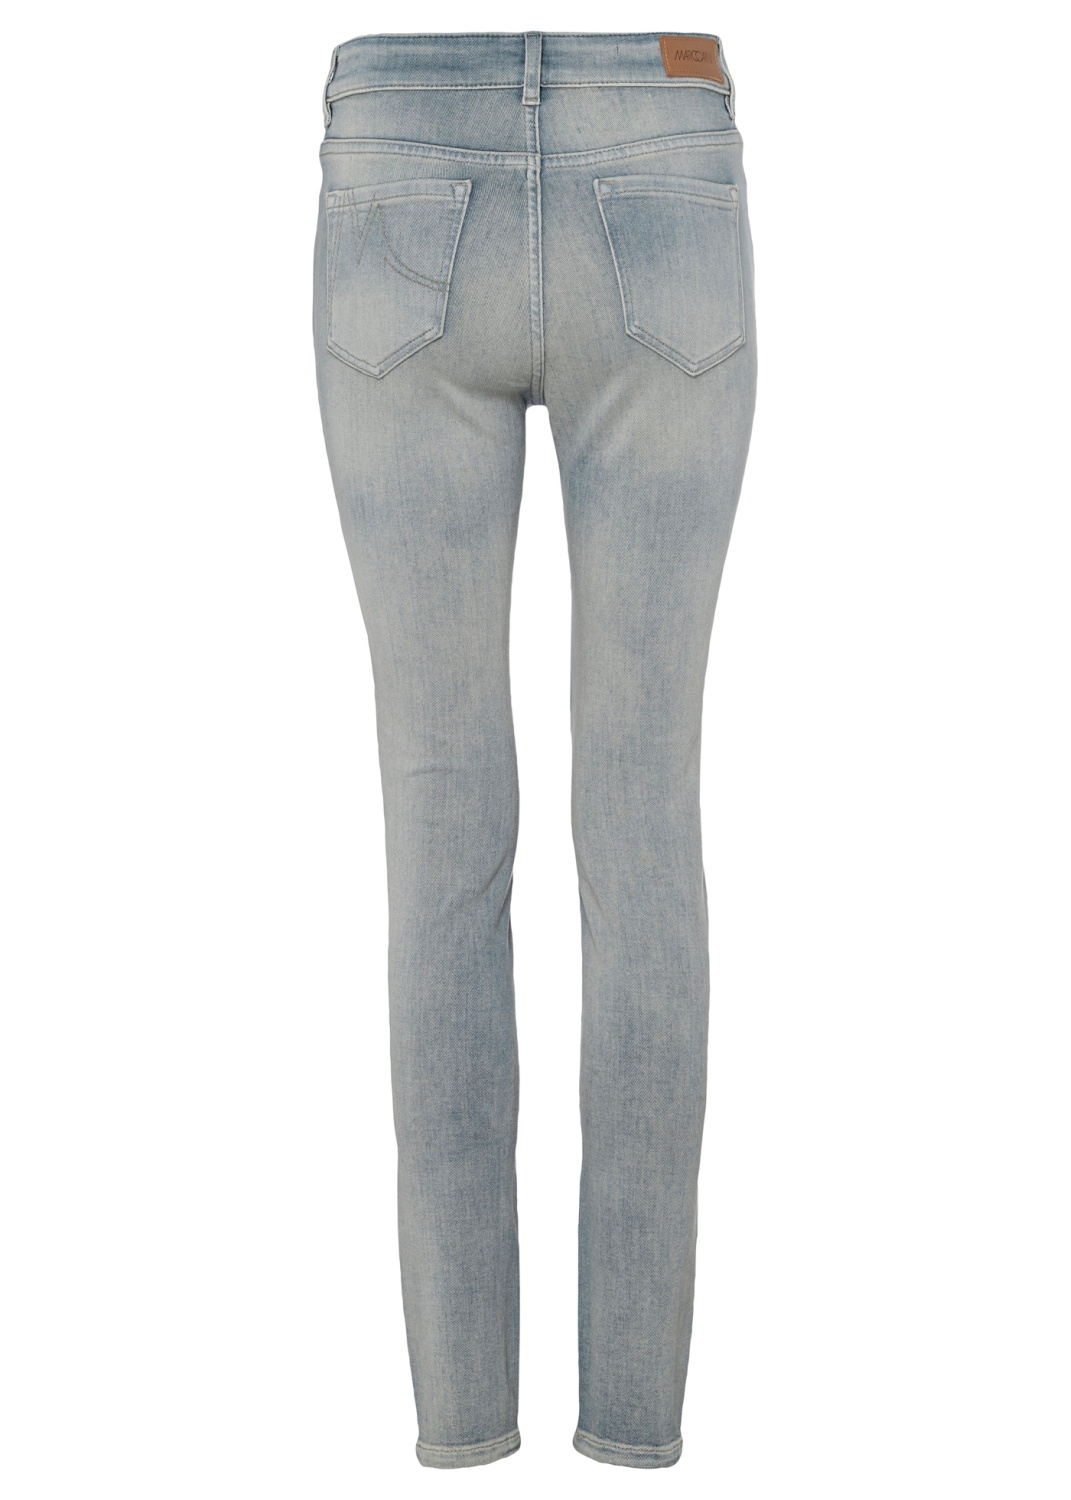 Jeans image number 1